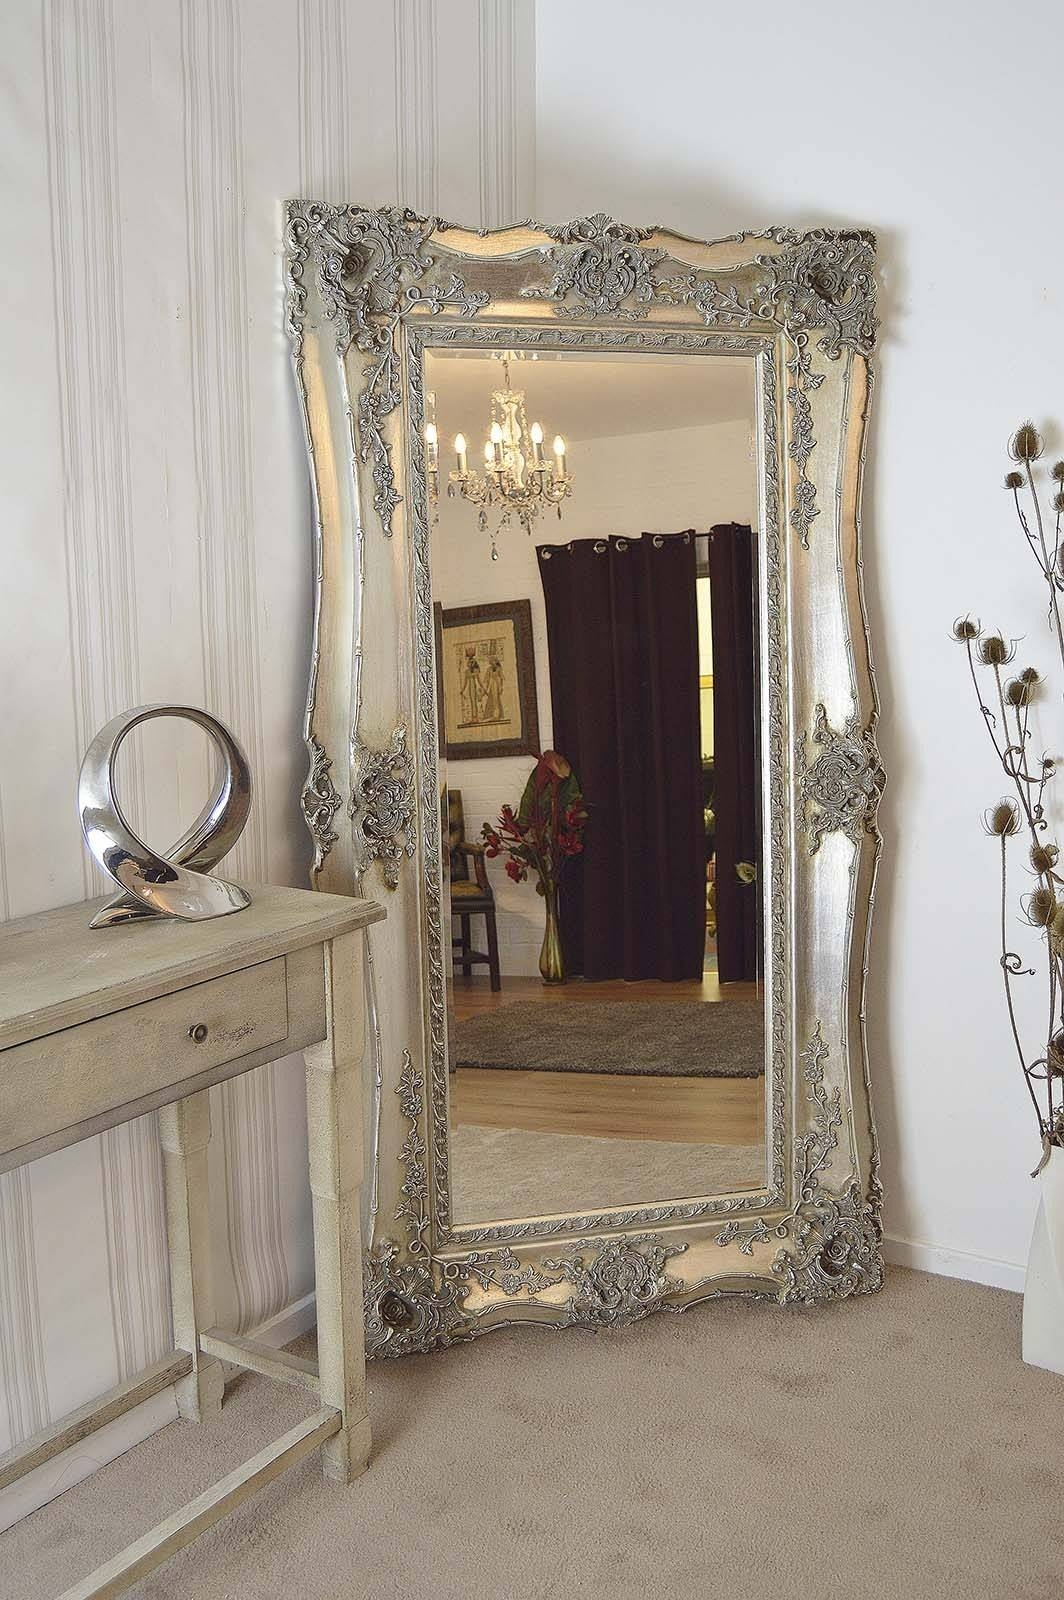 Large Antique Wall Mirror Ornate Frame Antique Ornate Wall Mirrors Inside Big Vintage Mirrors (View 15 of 25)